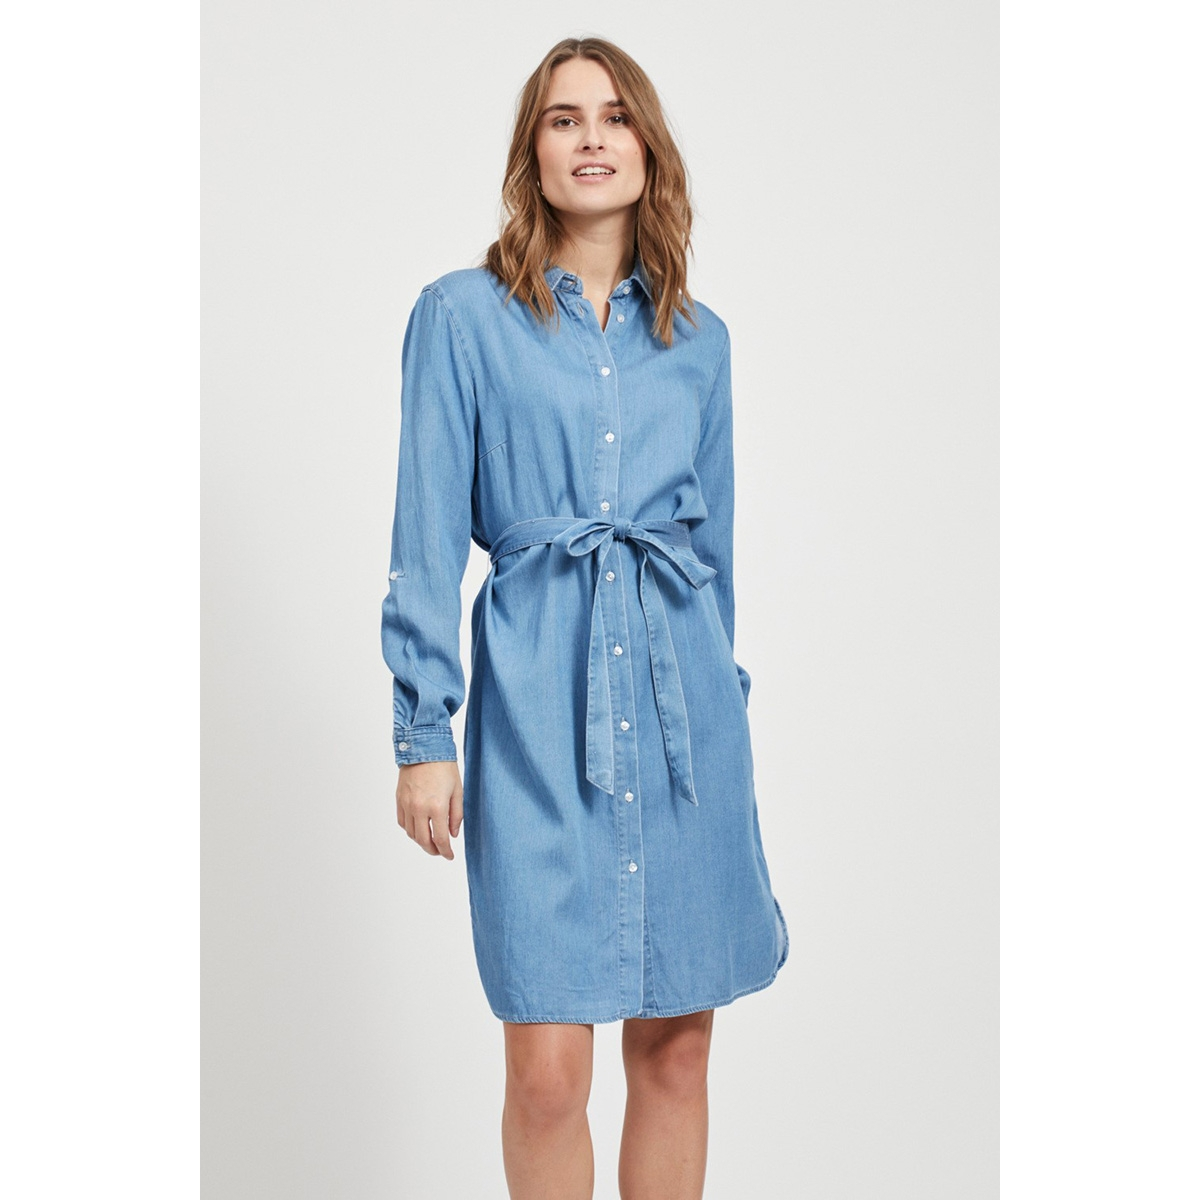 vibista denim belt dress/su - noos 14054674 vila jurk medium blue/clean wash